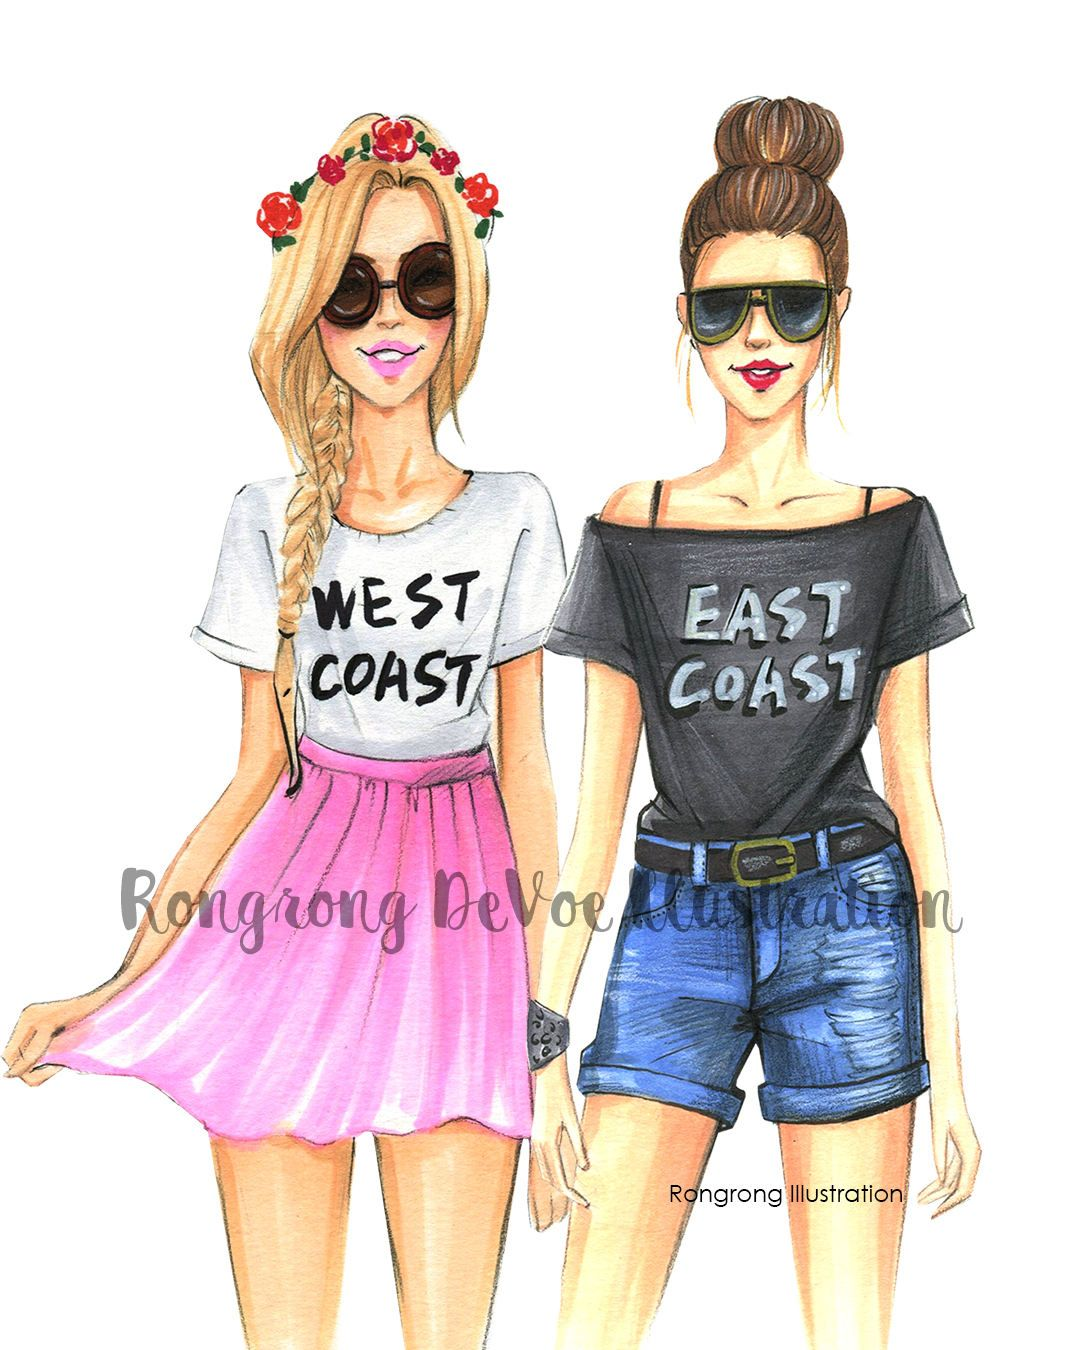 Agree, useful cute girl drawings fashion rather